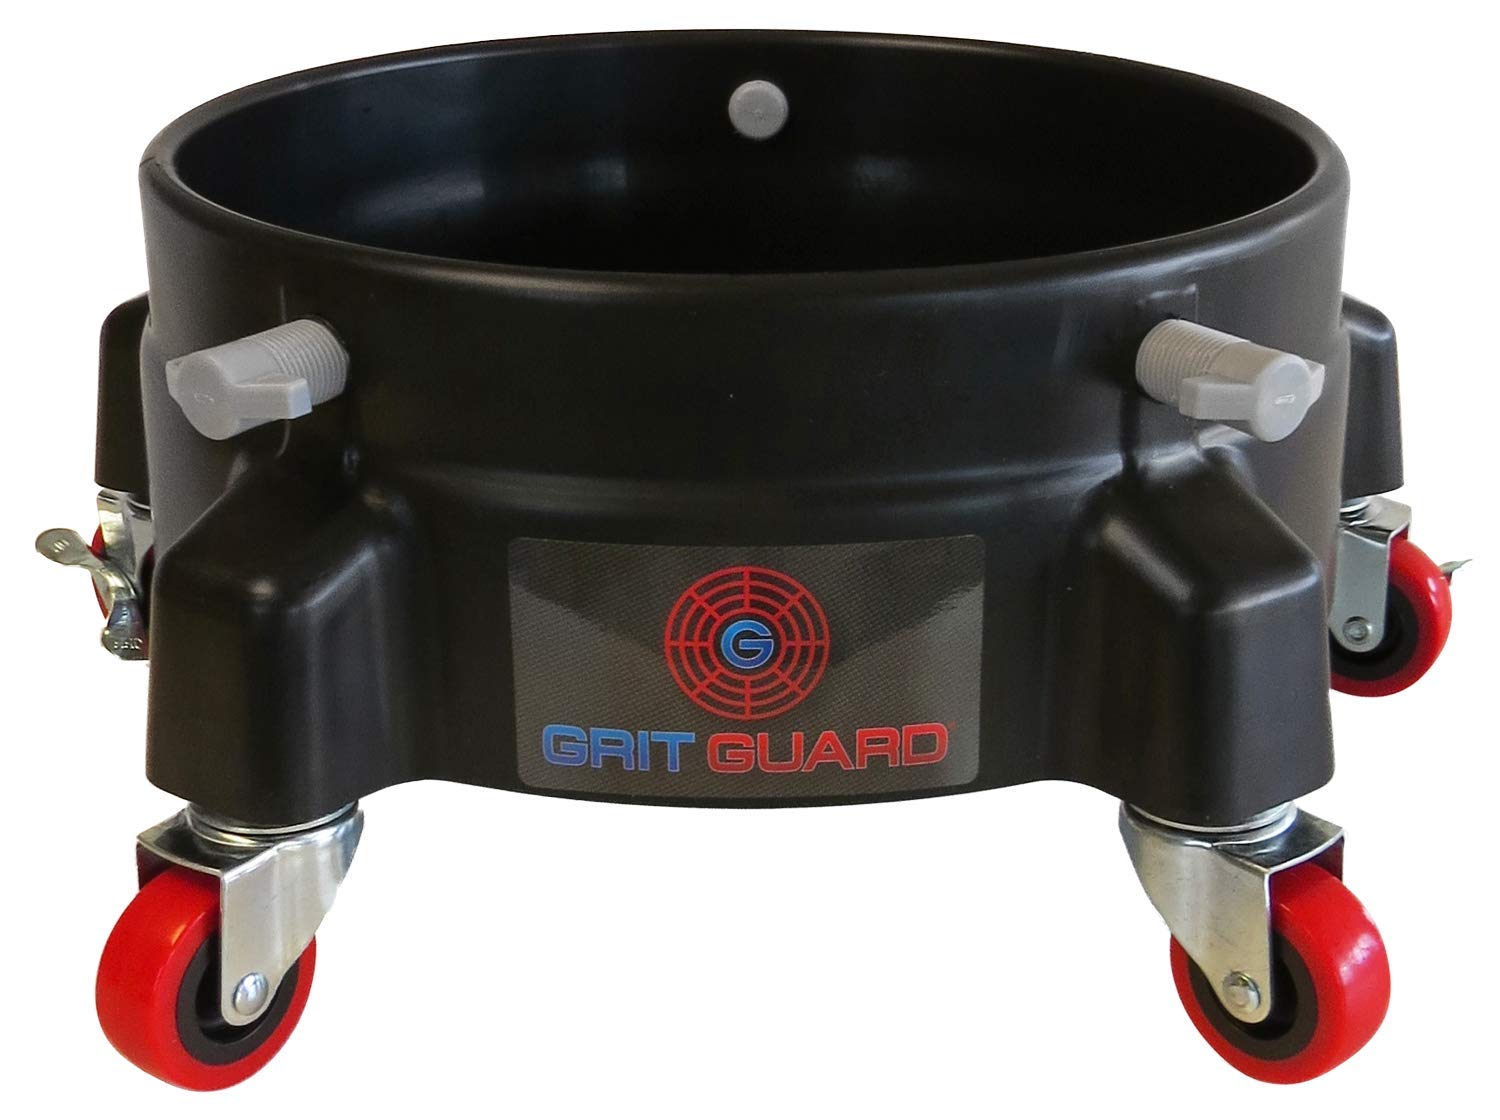 GRIT GUARD - Bucket Dolly With 5 B Recommendation Casters gift Wheels 2 Locking and